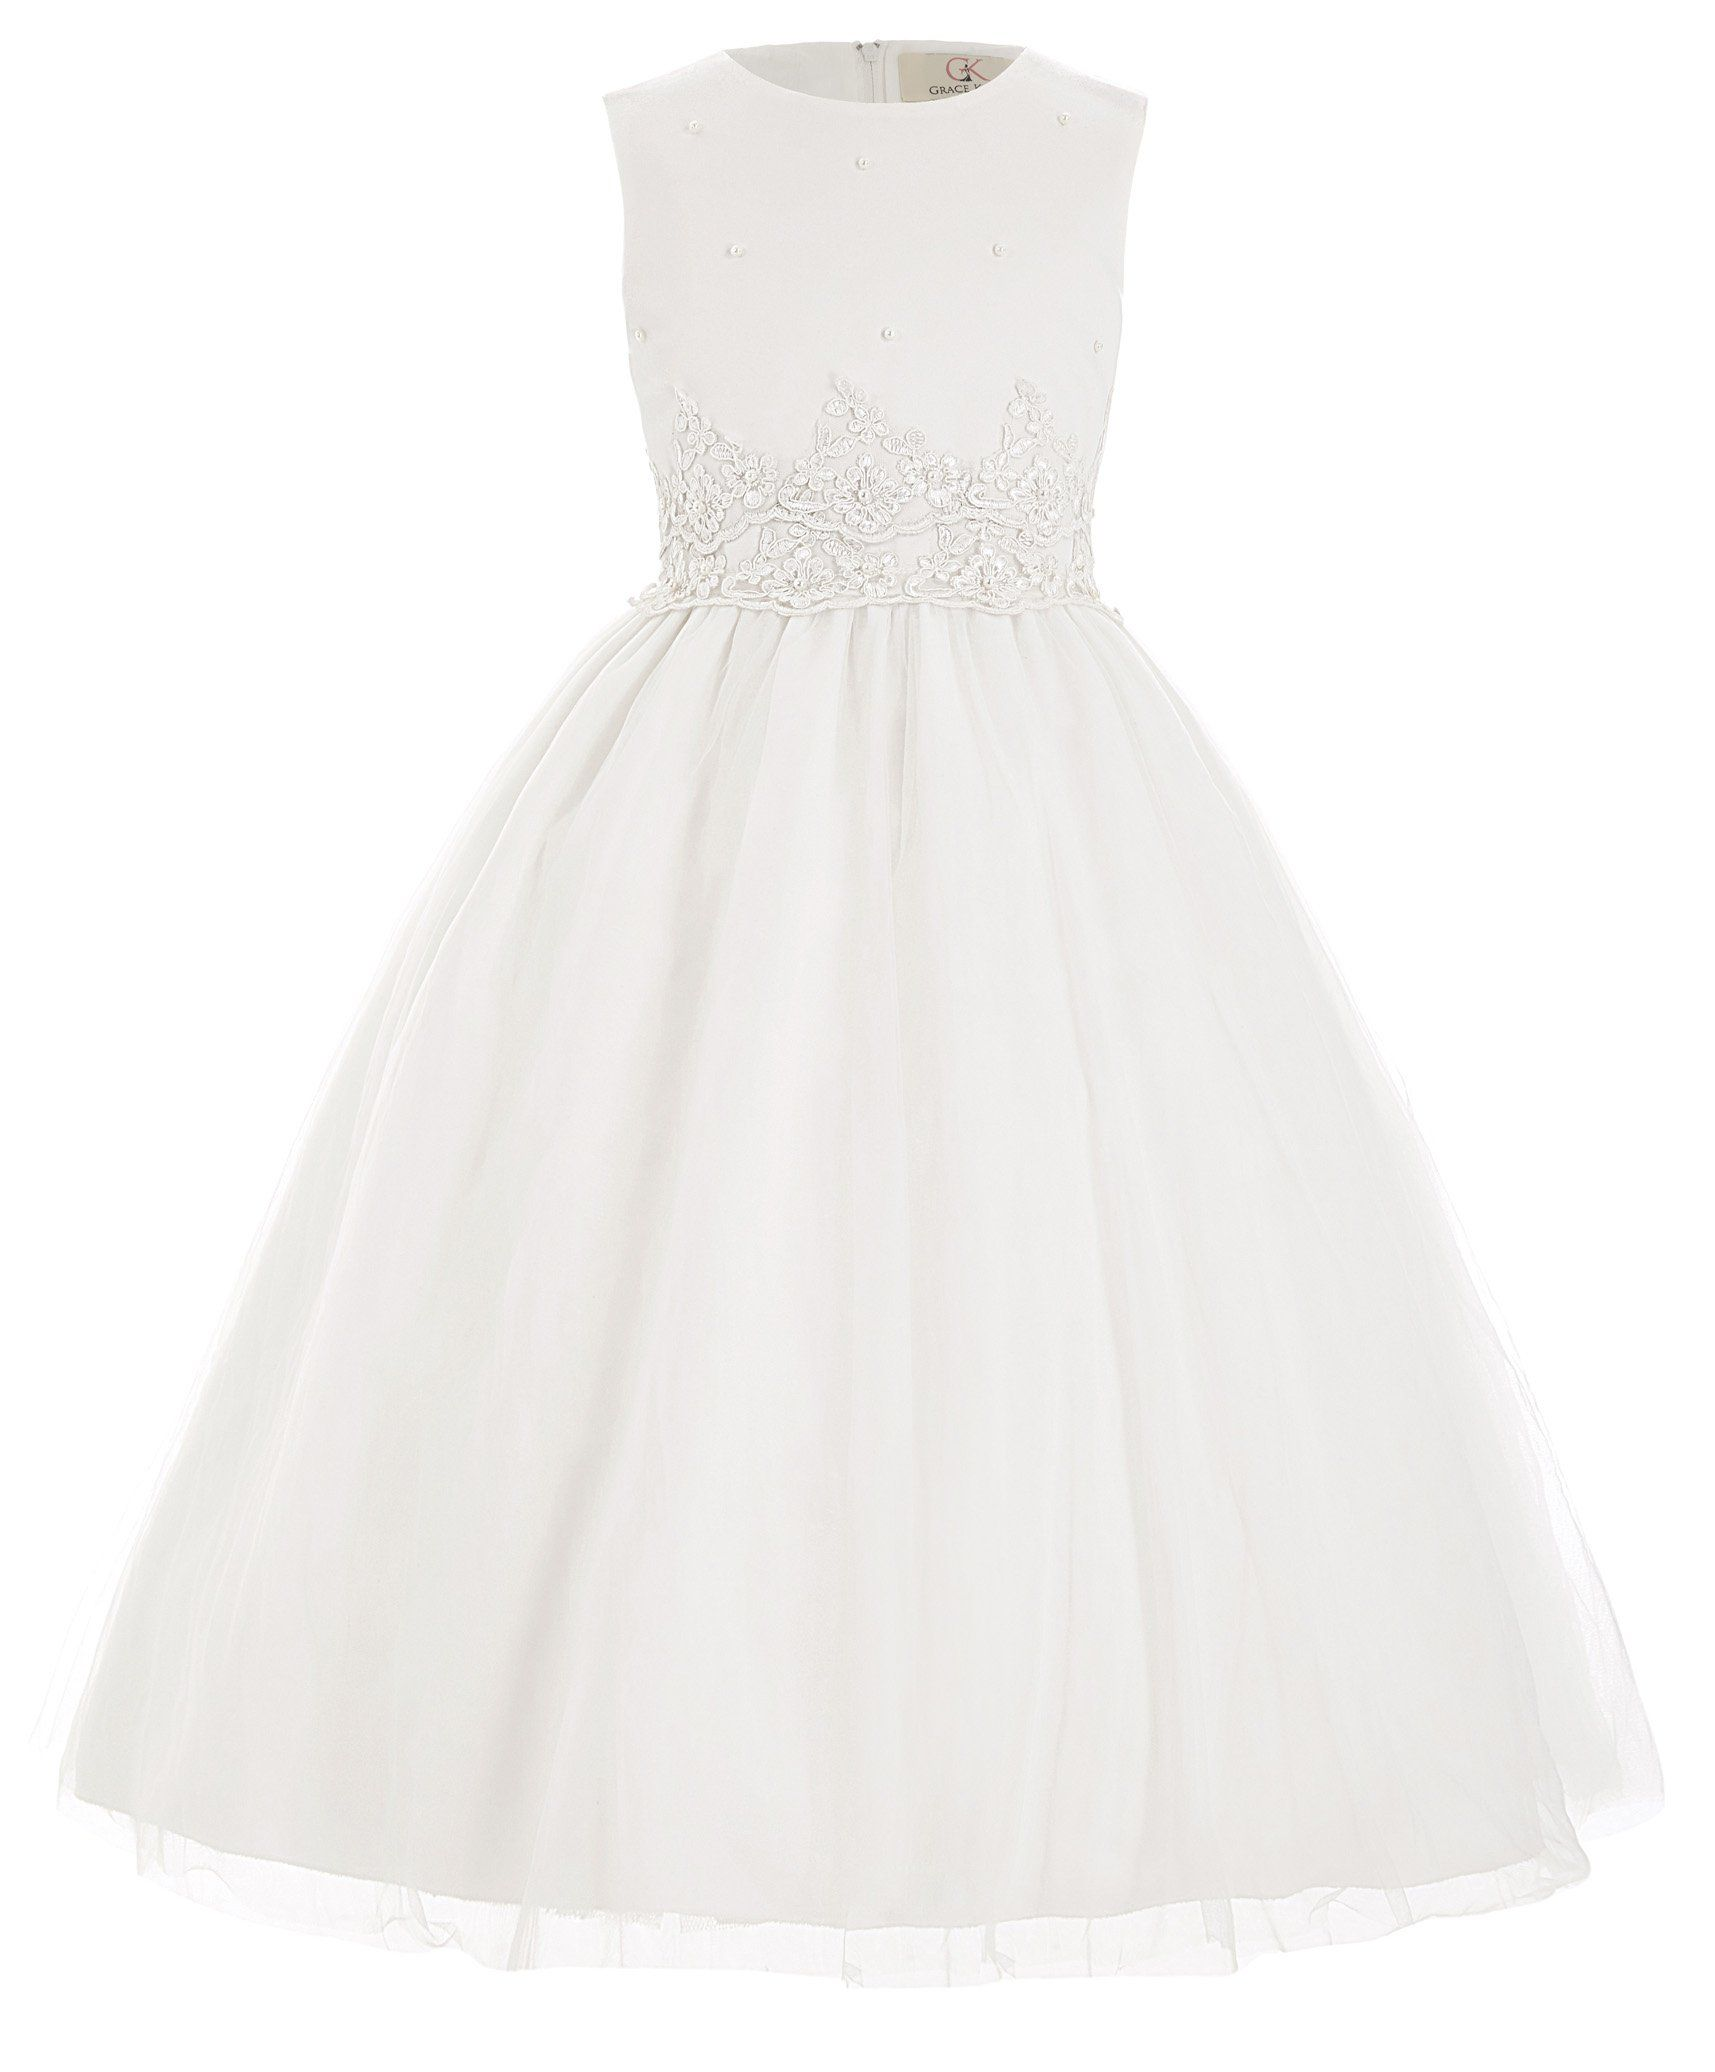 Kids wedding party darling flower dresses yrs cl please